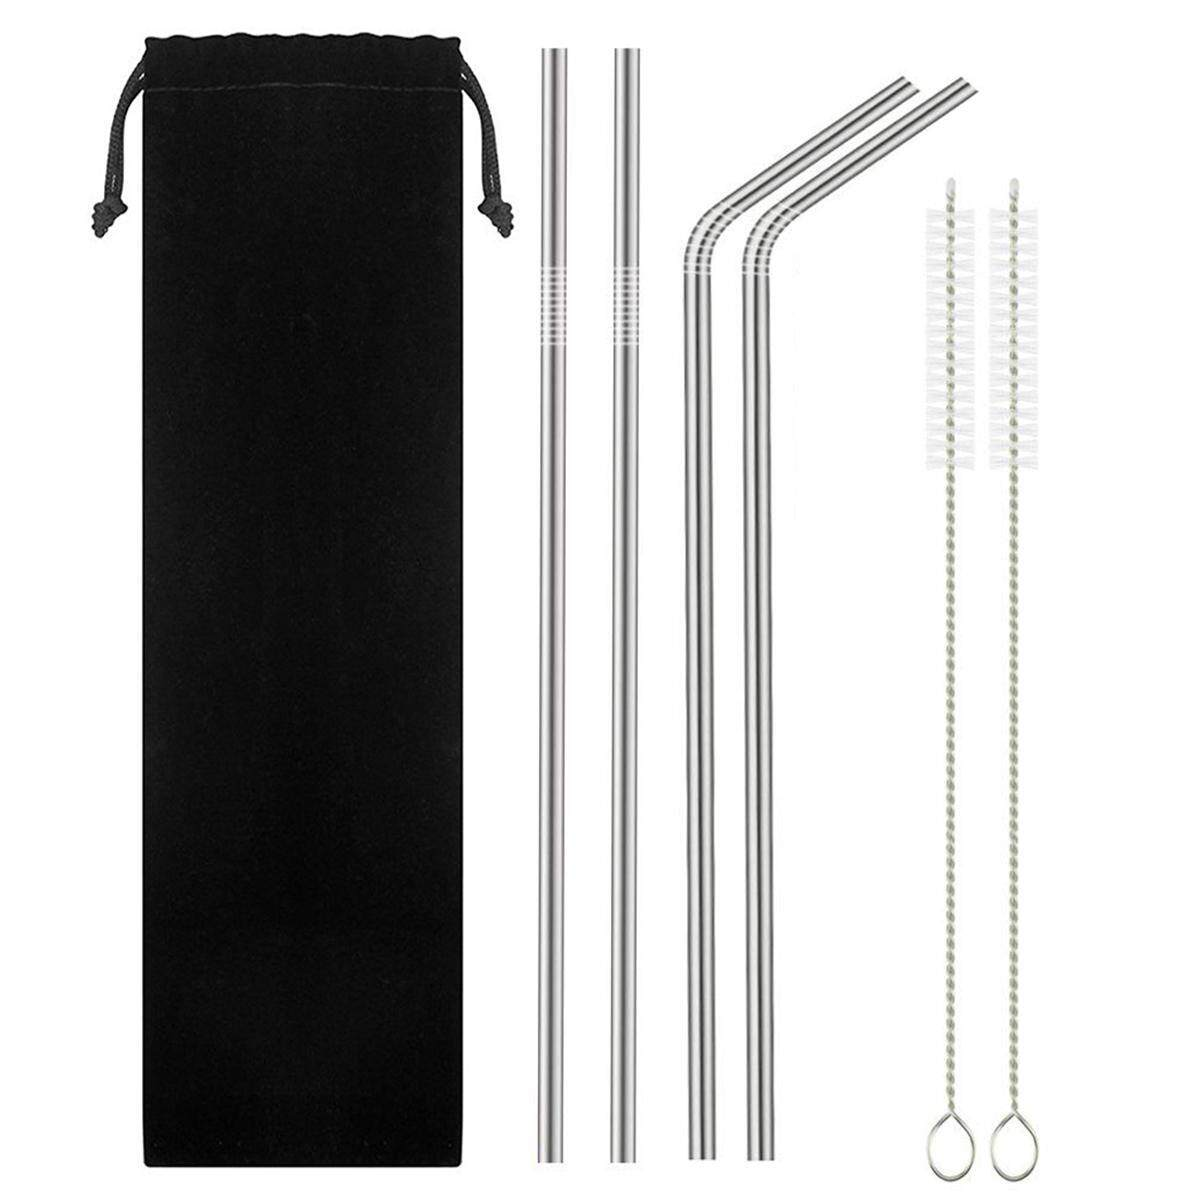 leegoal Stainless Steel Straws, Reusable Metal Drinking Straws For Cocktail, Smoothie, Hot Drinks, Yeti RTIC Tumbler Rambler Cups